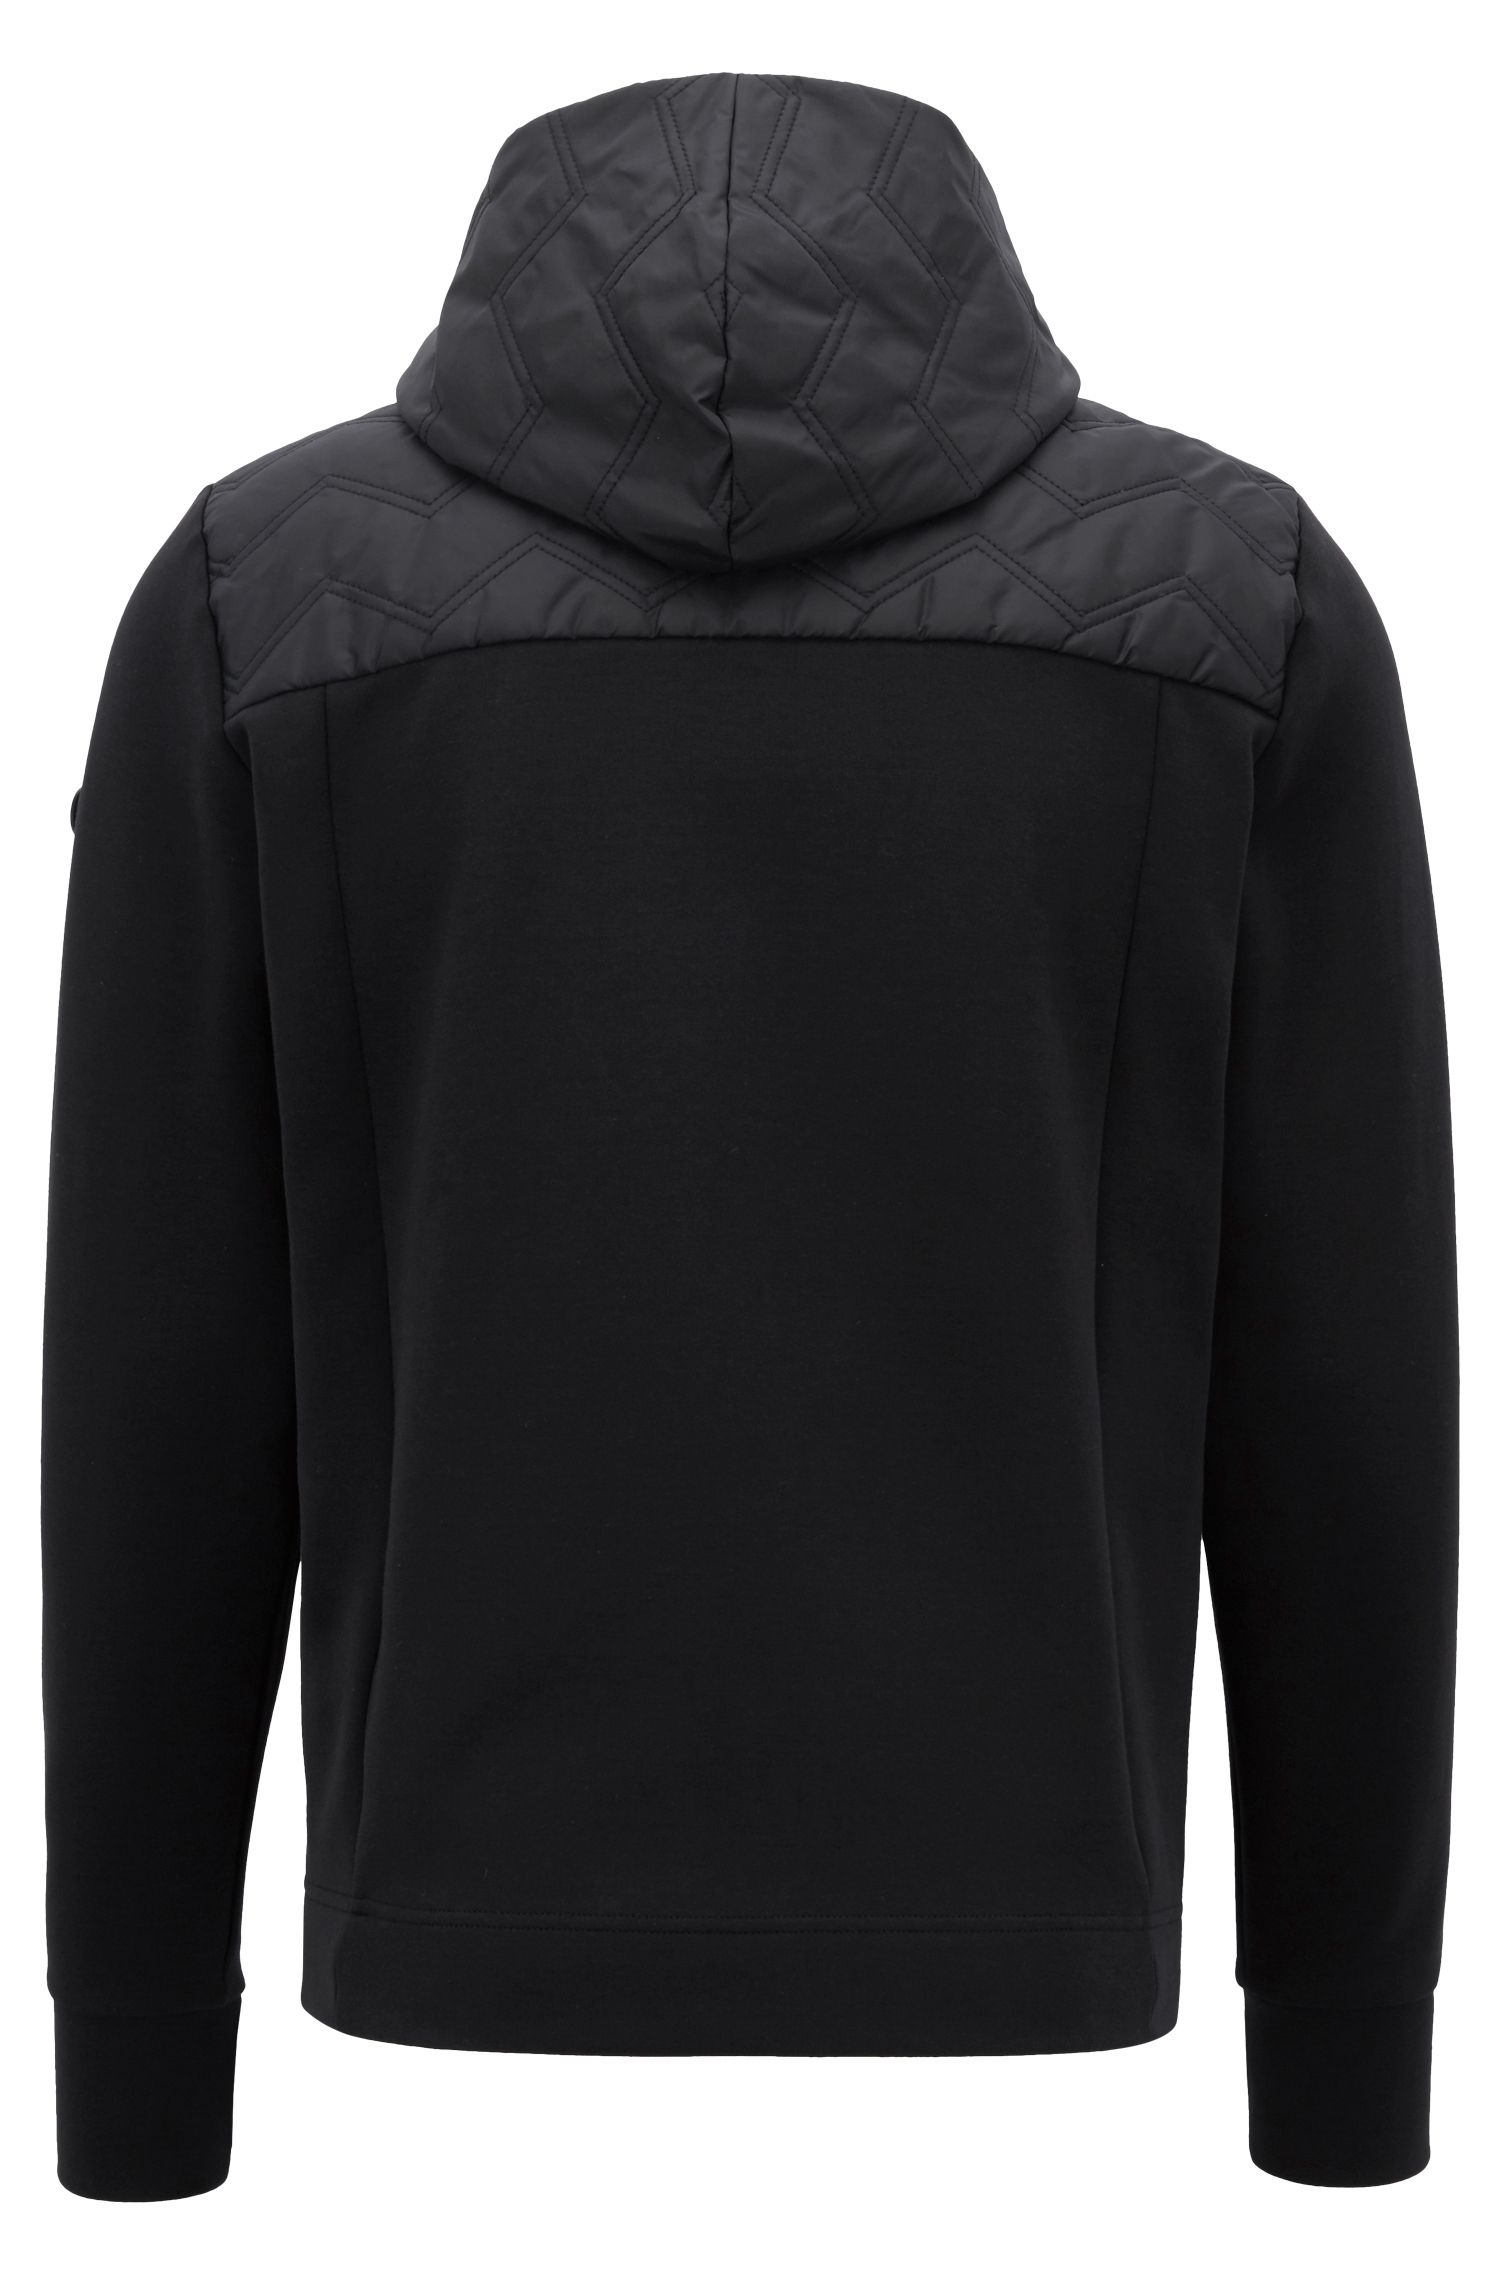 Zippered sweatshirt with quilted panel and detachable hood, Black